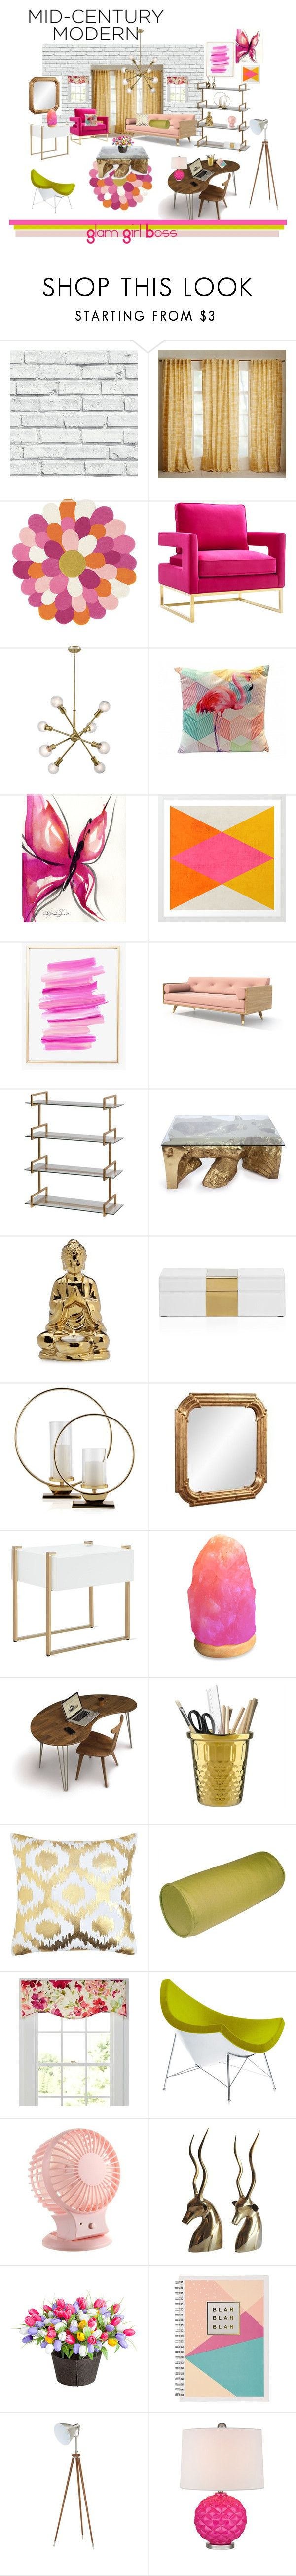 """""""Mid Century Modern Glam Girl Boss"""" by brianna-przybysz-zajicek ❤ liked on Polyvore featuring interior, interiors, interior design, home, home decor, interior decorating, West Elm, HARLEQUIN, Brush Strokes and WALL"""